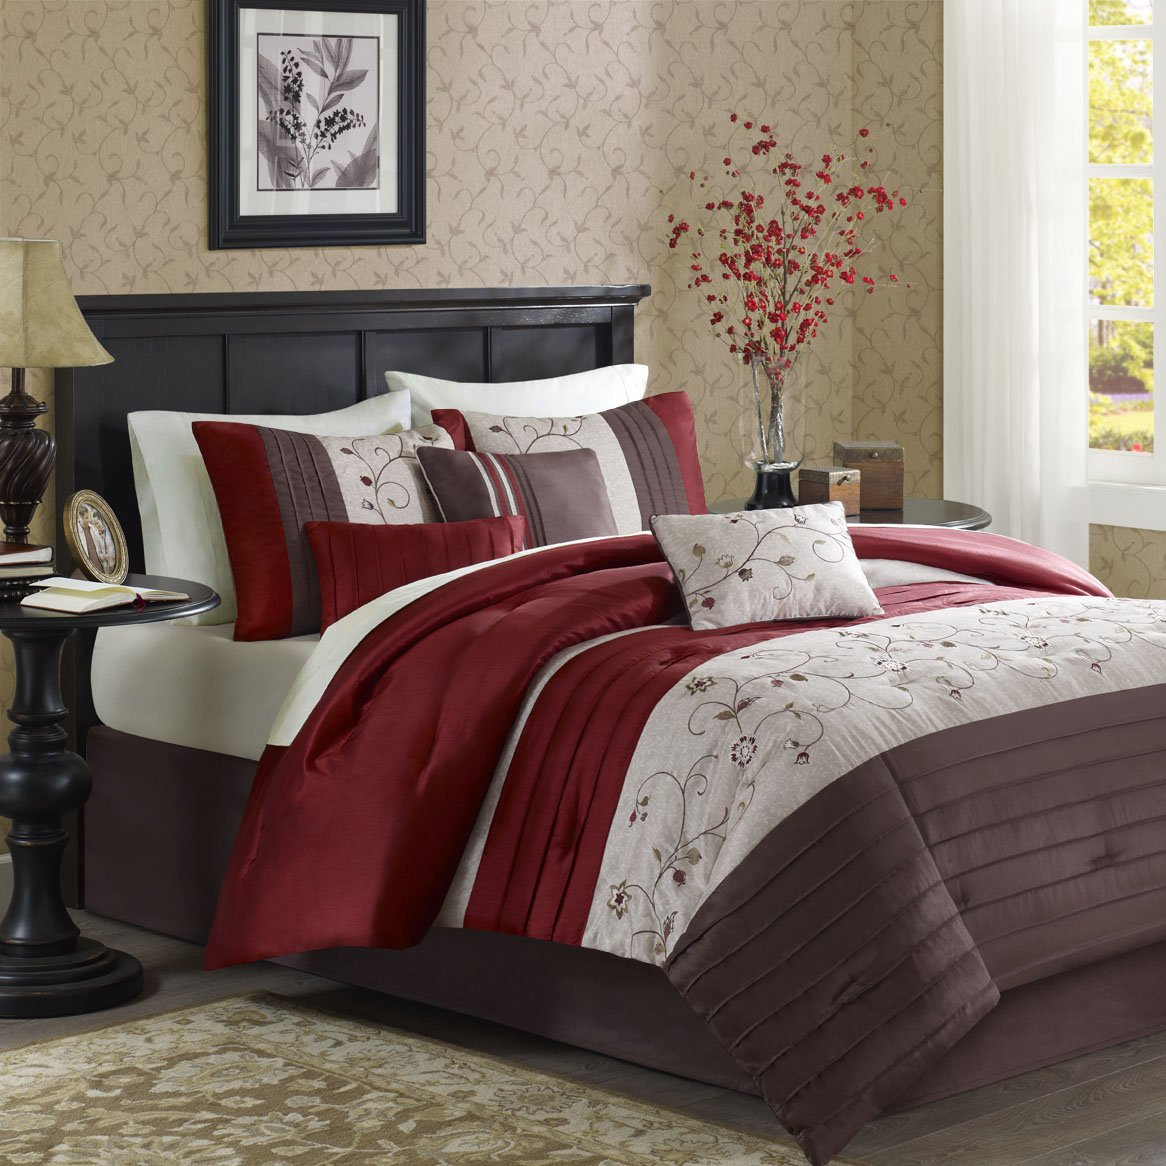 Brown and red bedroom - Amazon Com Madison Park Serene 6 Piece Duvet Cover Set King California King Red Home Kitchen